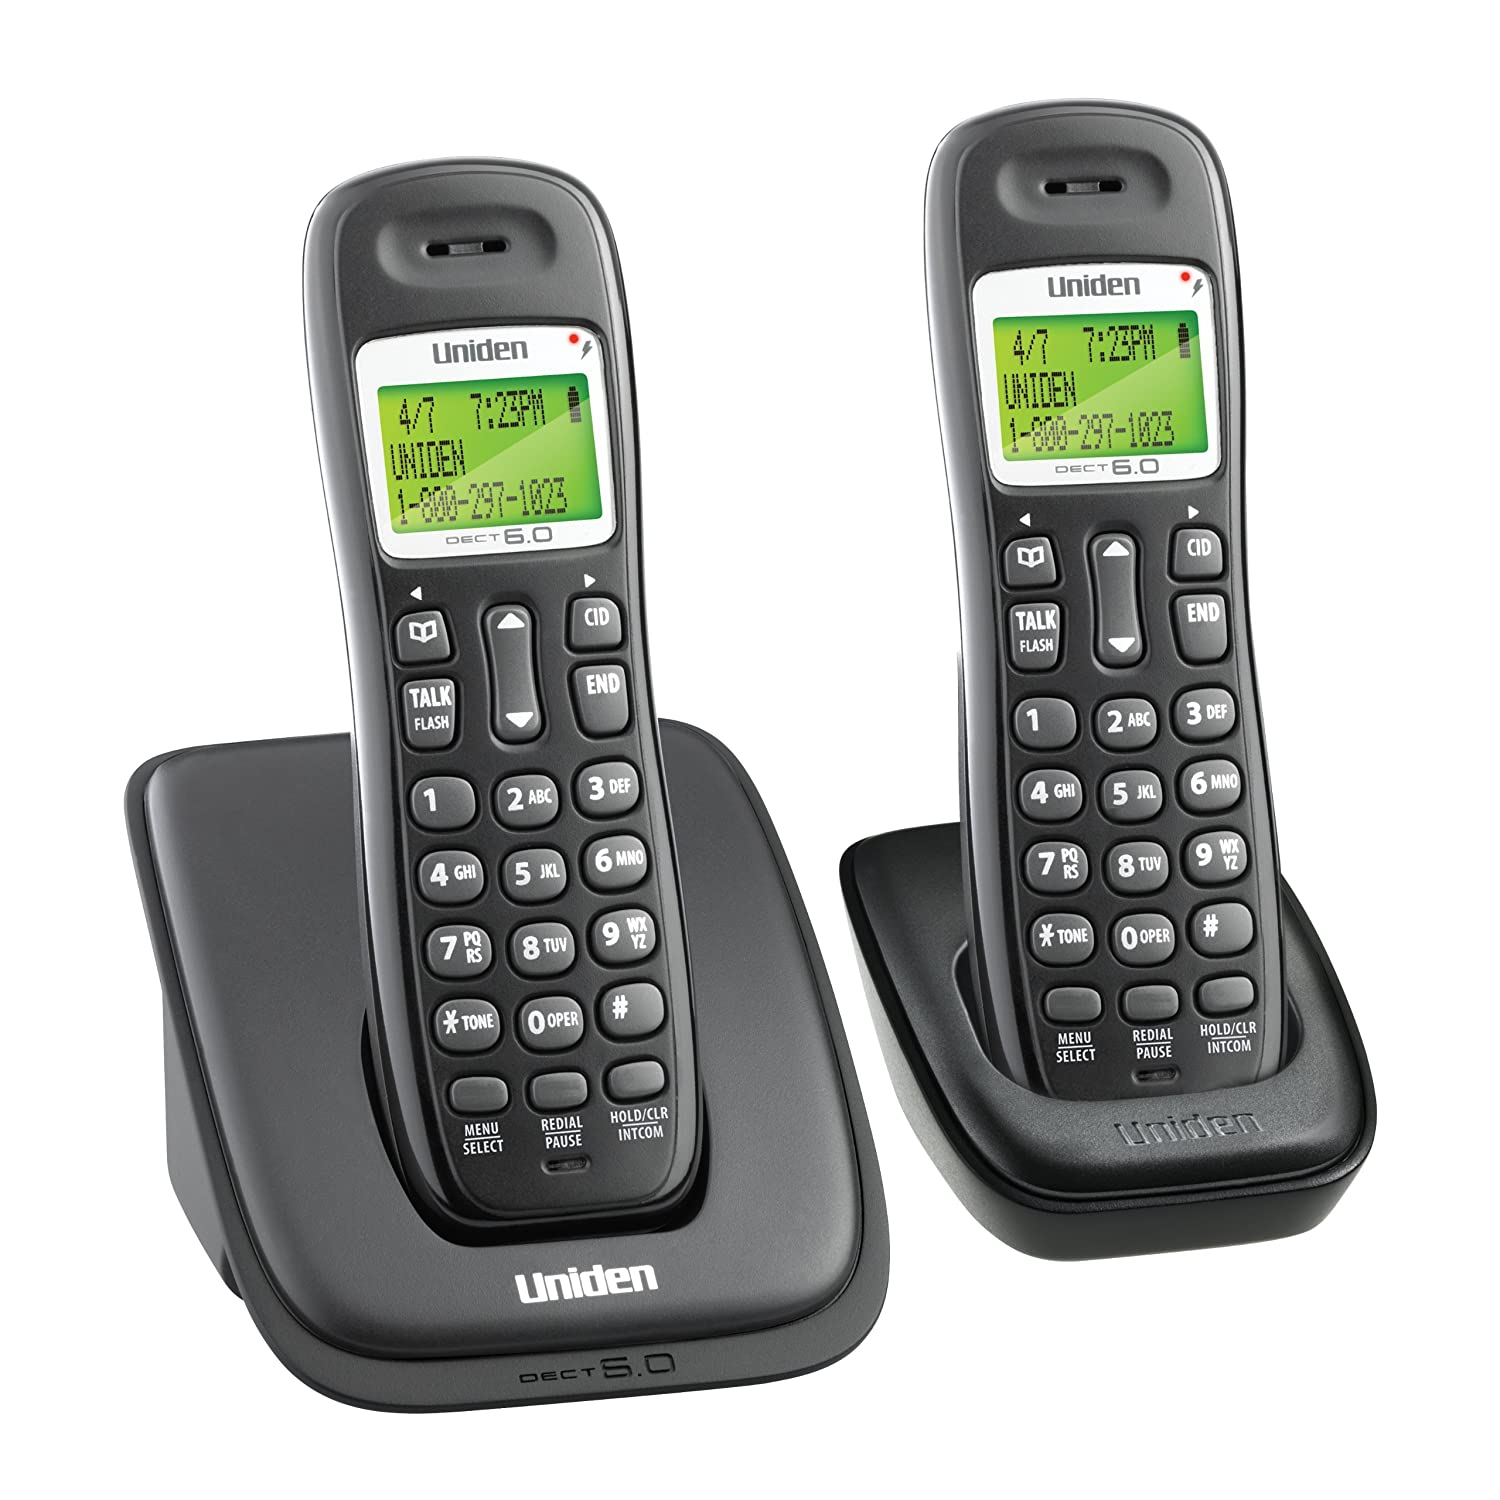 Amazon.com: Uniden DECT 6.0 Cordless Phone with Caller ID/Call Waiting  DECT1363: Electronics